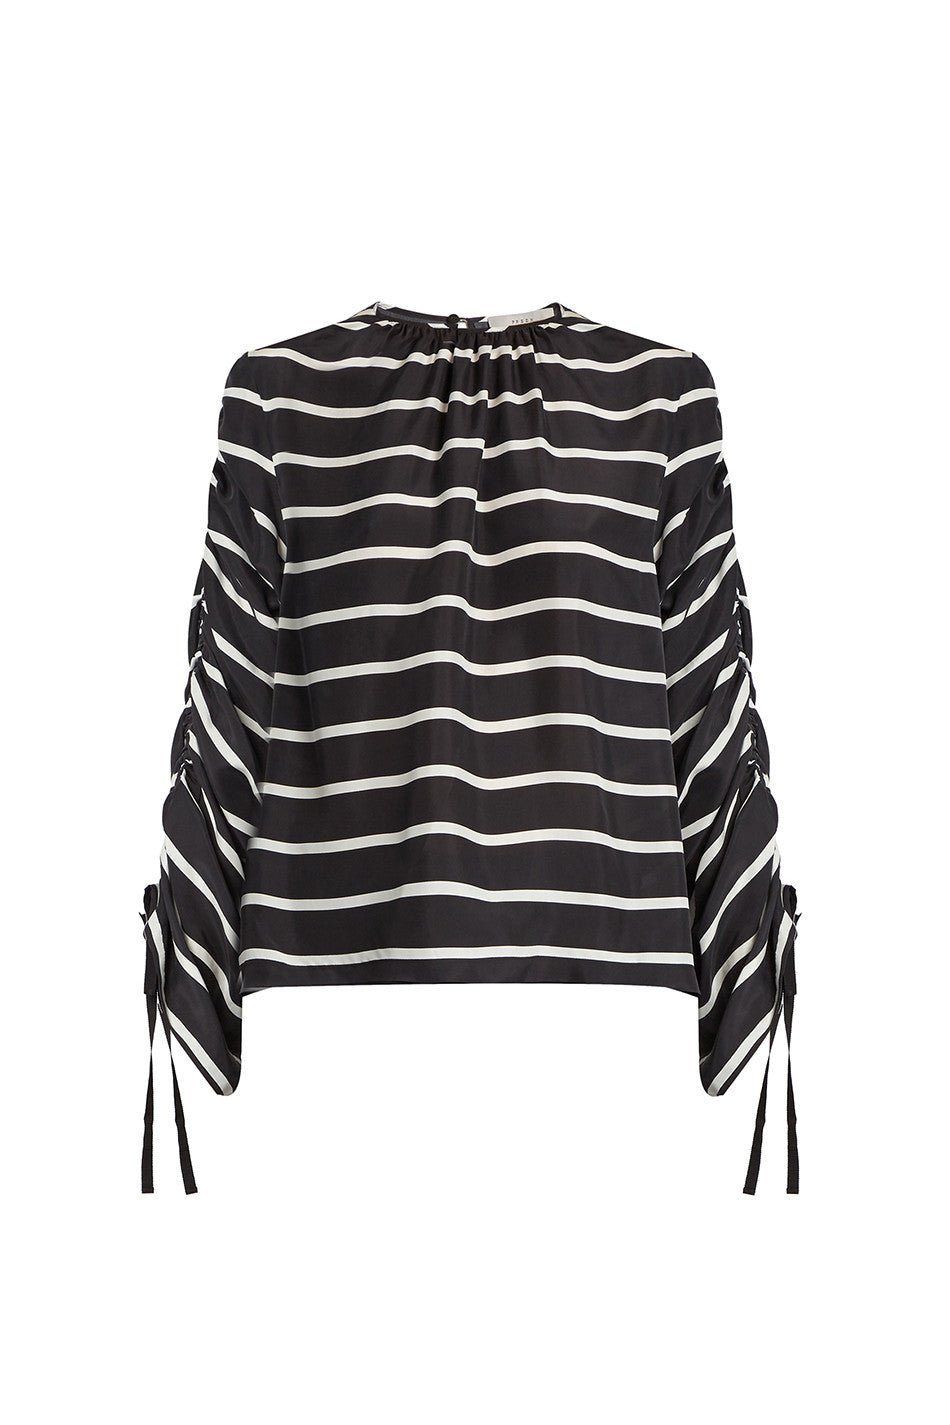 WILL STRIPED SILK TOP - PREEN - MCPOPS